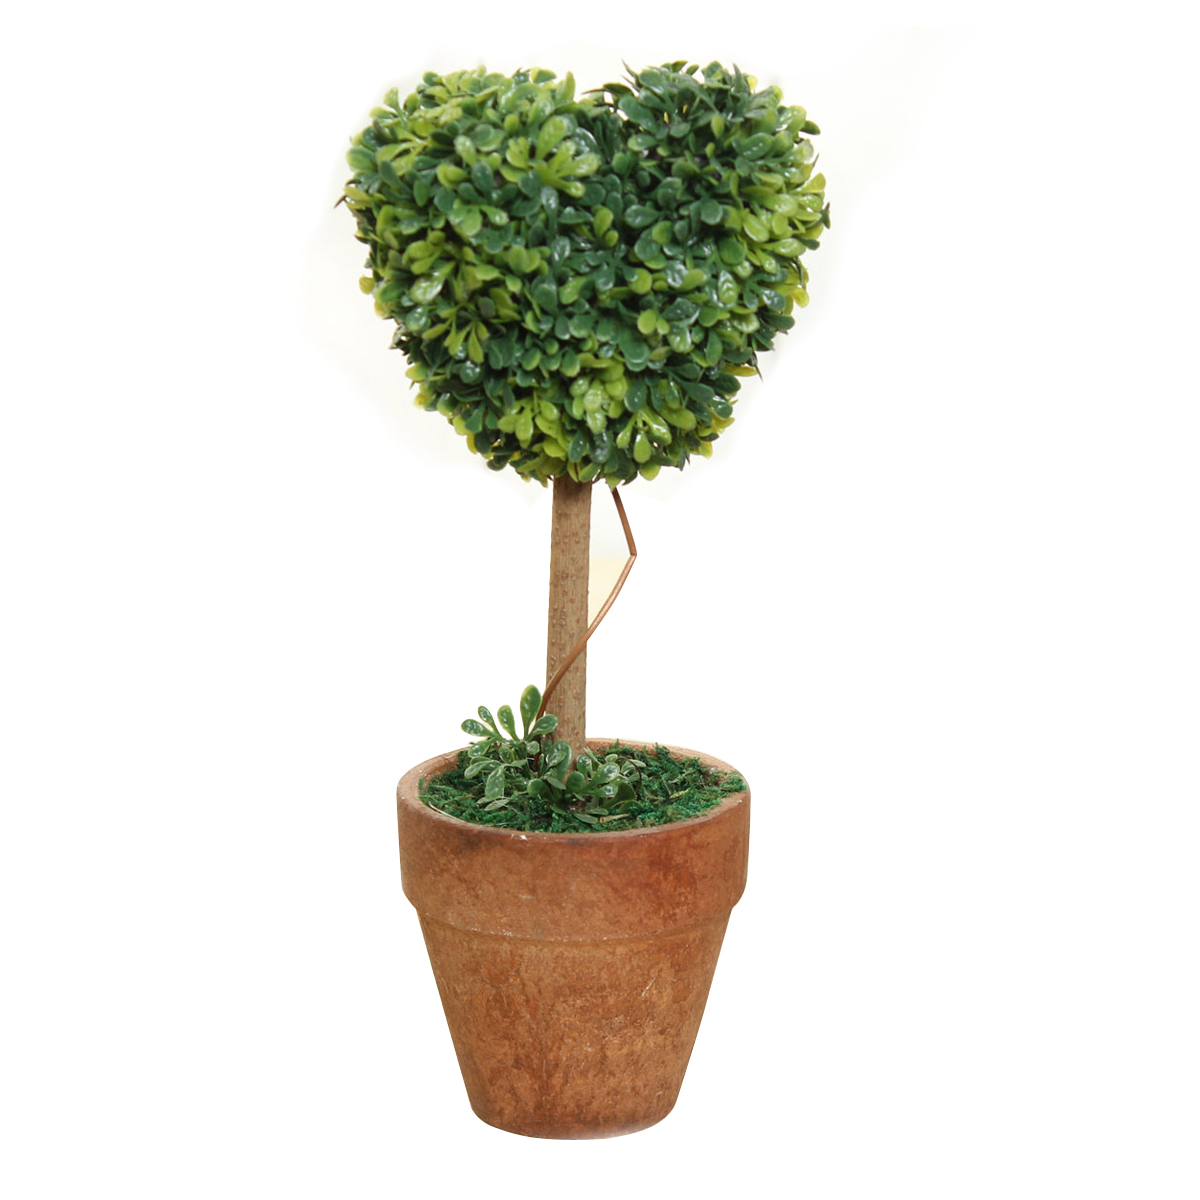 Plastic garden grass ball topiary tree pot dried plant for for Garden topiary trees